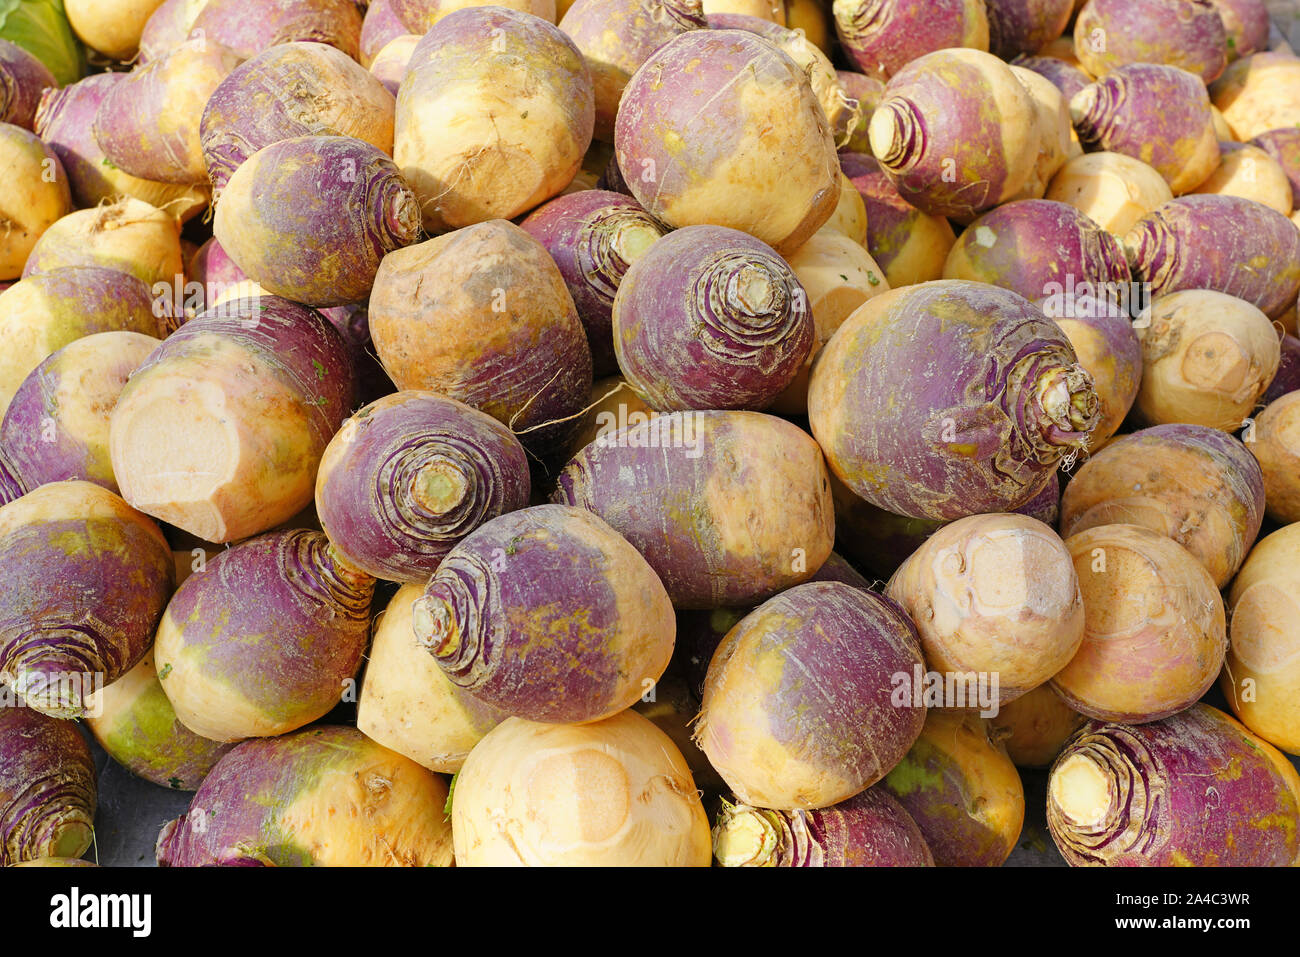 Purple And White Rutabaga Swede Root Vegetable At A Farmers Market In The Fall Stock Photo Alamy